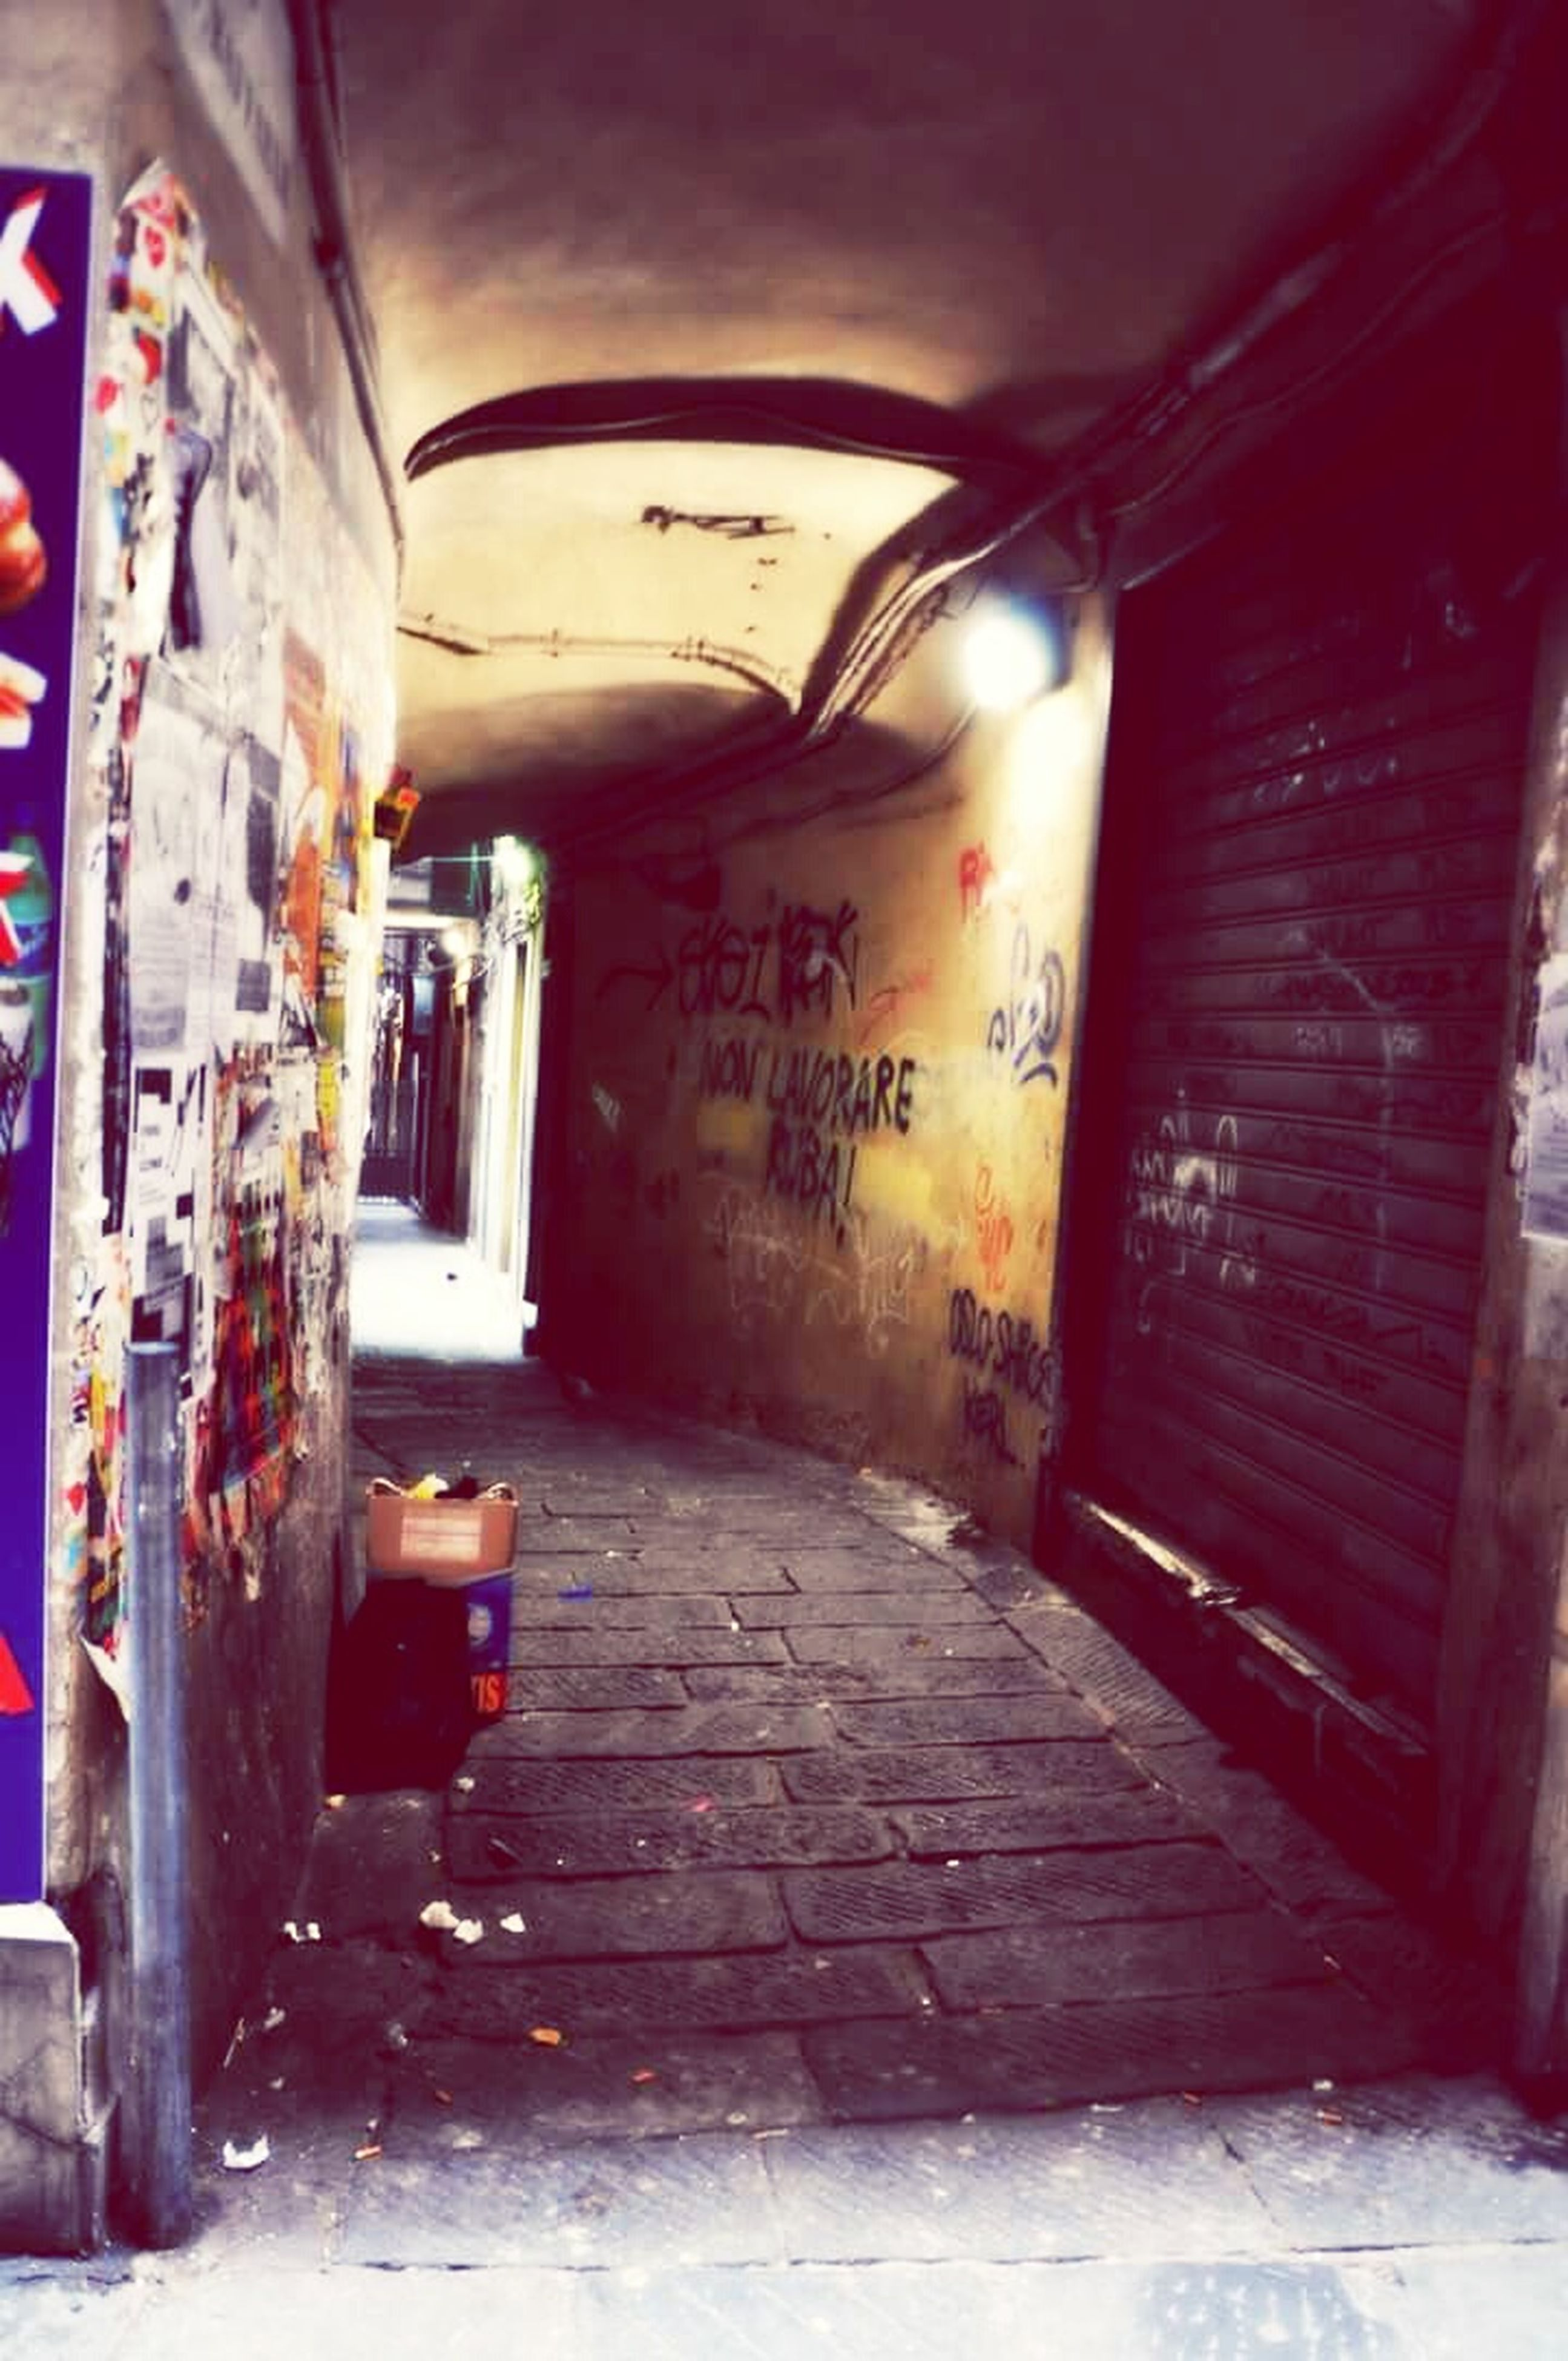 architecture, built structure, building exterior, indoors, door, wall - building feature, illuminated, the way forward, graffiti, building, house, abandoned, entrance, old, wall, alley, arch, lighting equipment, corridor, doorway